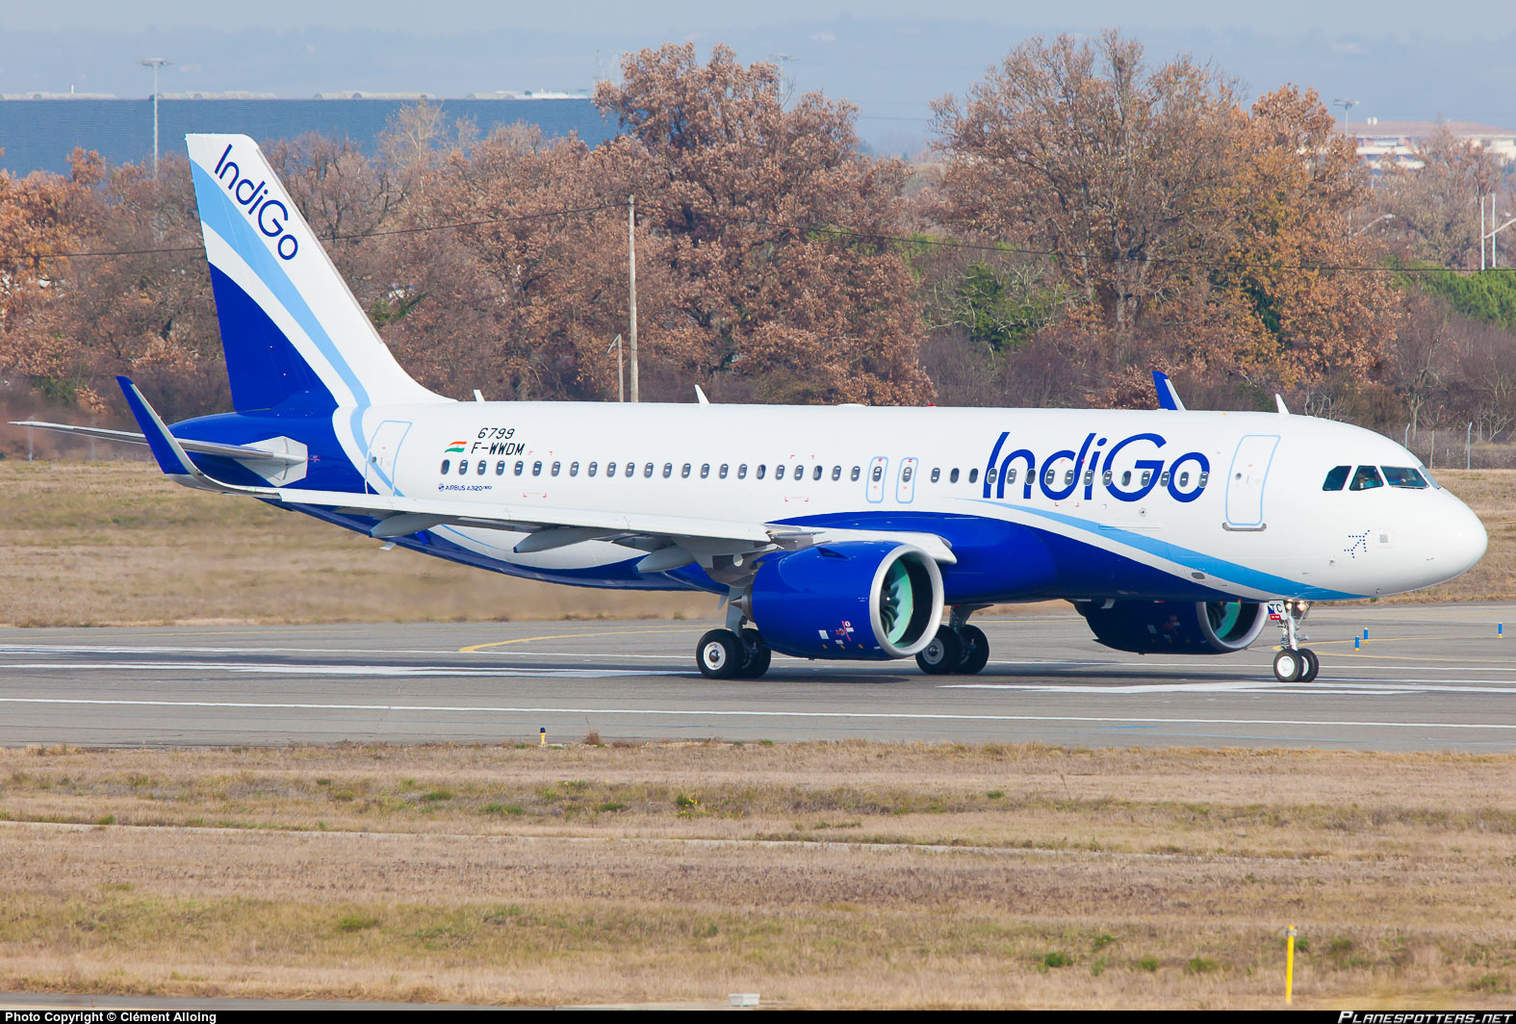 Passengers 12 and under can no longer fly in the premium seats of IndiGo flights